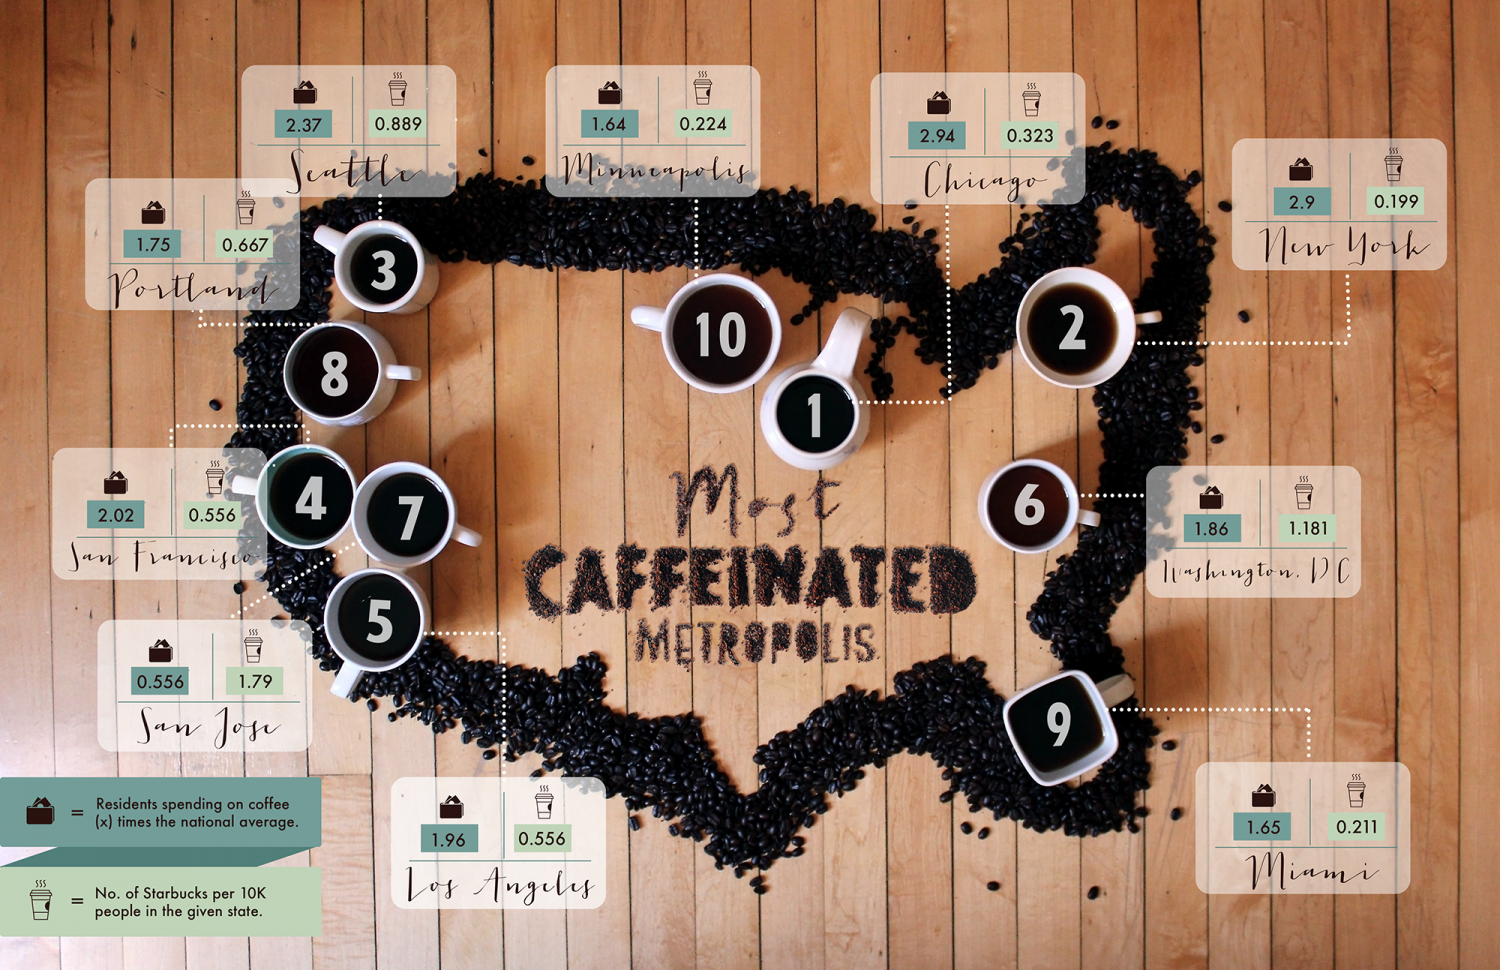 Most Caffeinated Metropolis Infographic